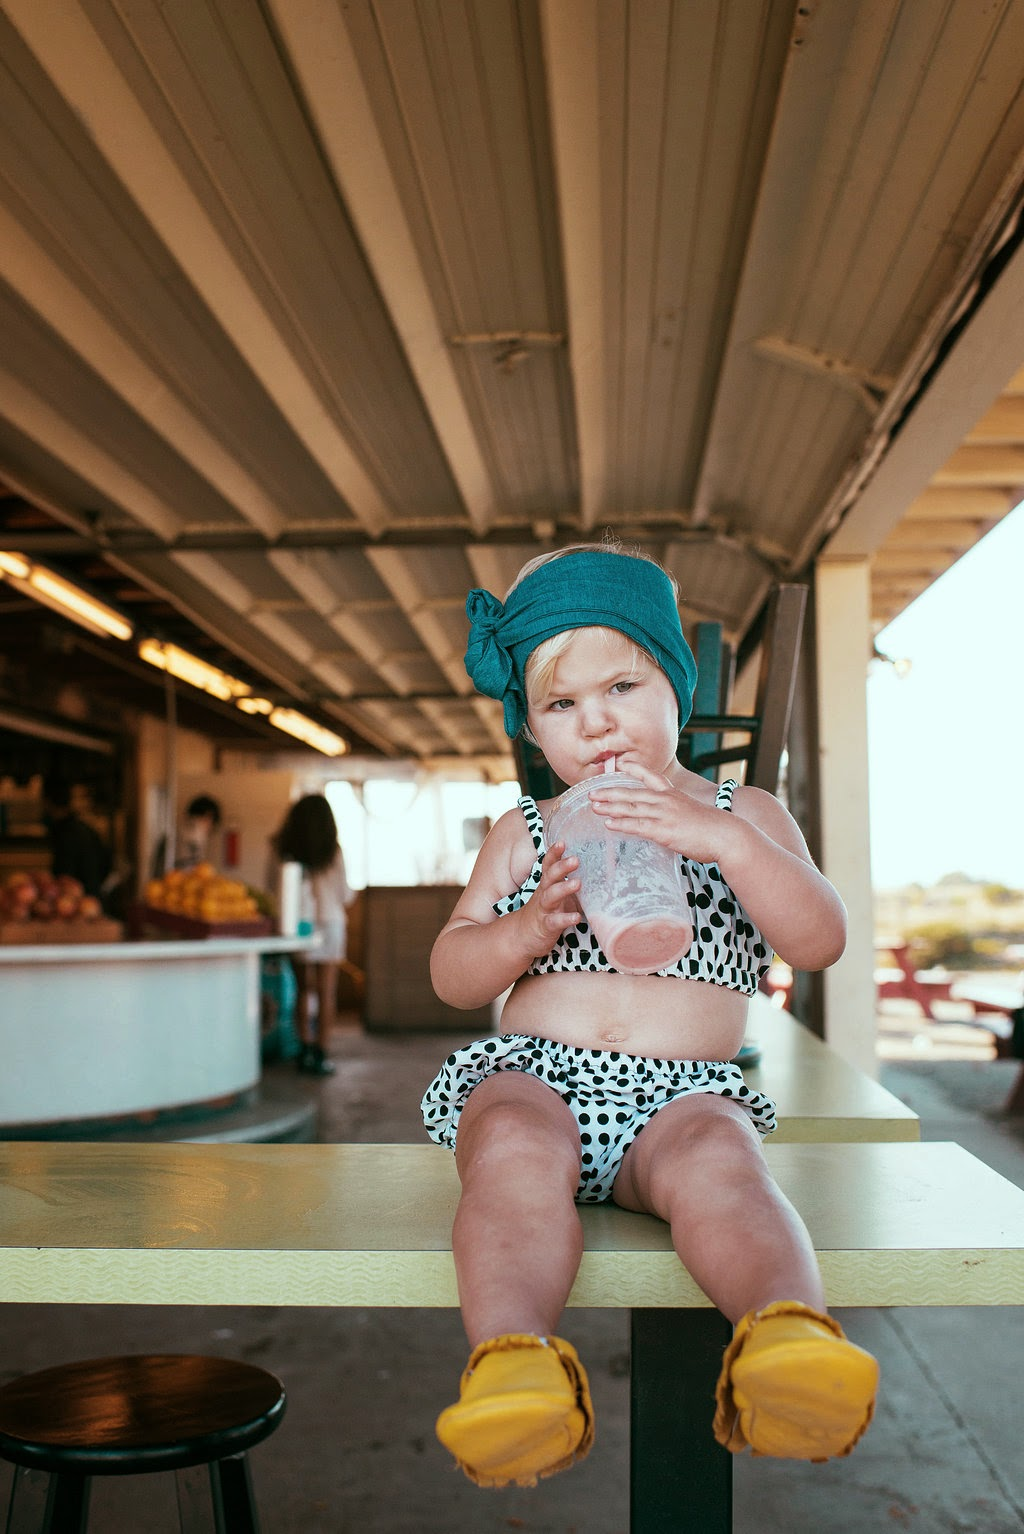 Kids fashion photo shoot by Wise Looks, Loola Baby, Tiny Whales, Freshly Picked, Hugo Loves Tiki, The Twirl Shop, Goat Milk NYC, Shop Sweet Threads, Carly Megan Clothing and PreFresh 9